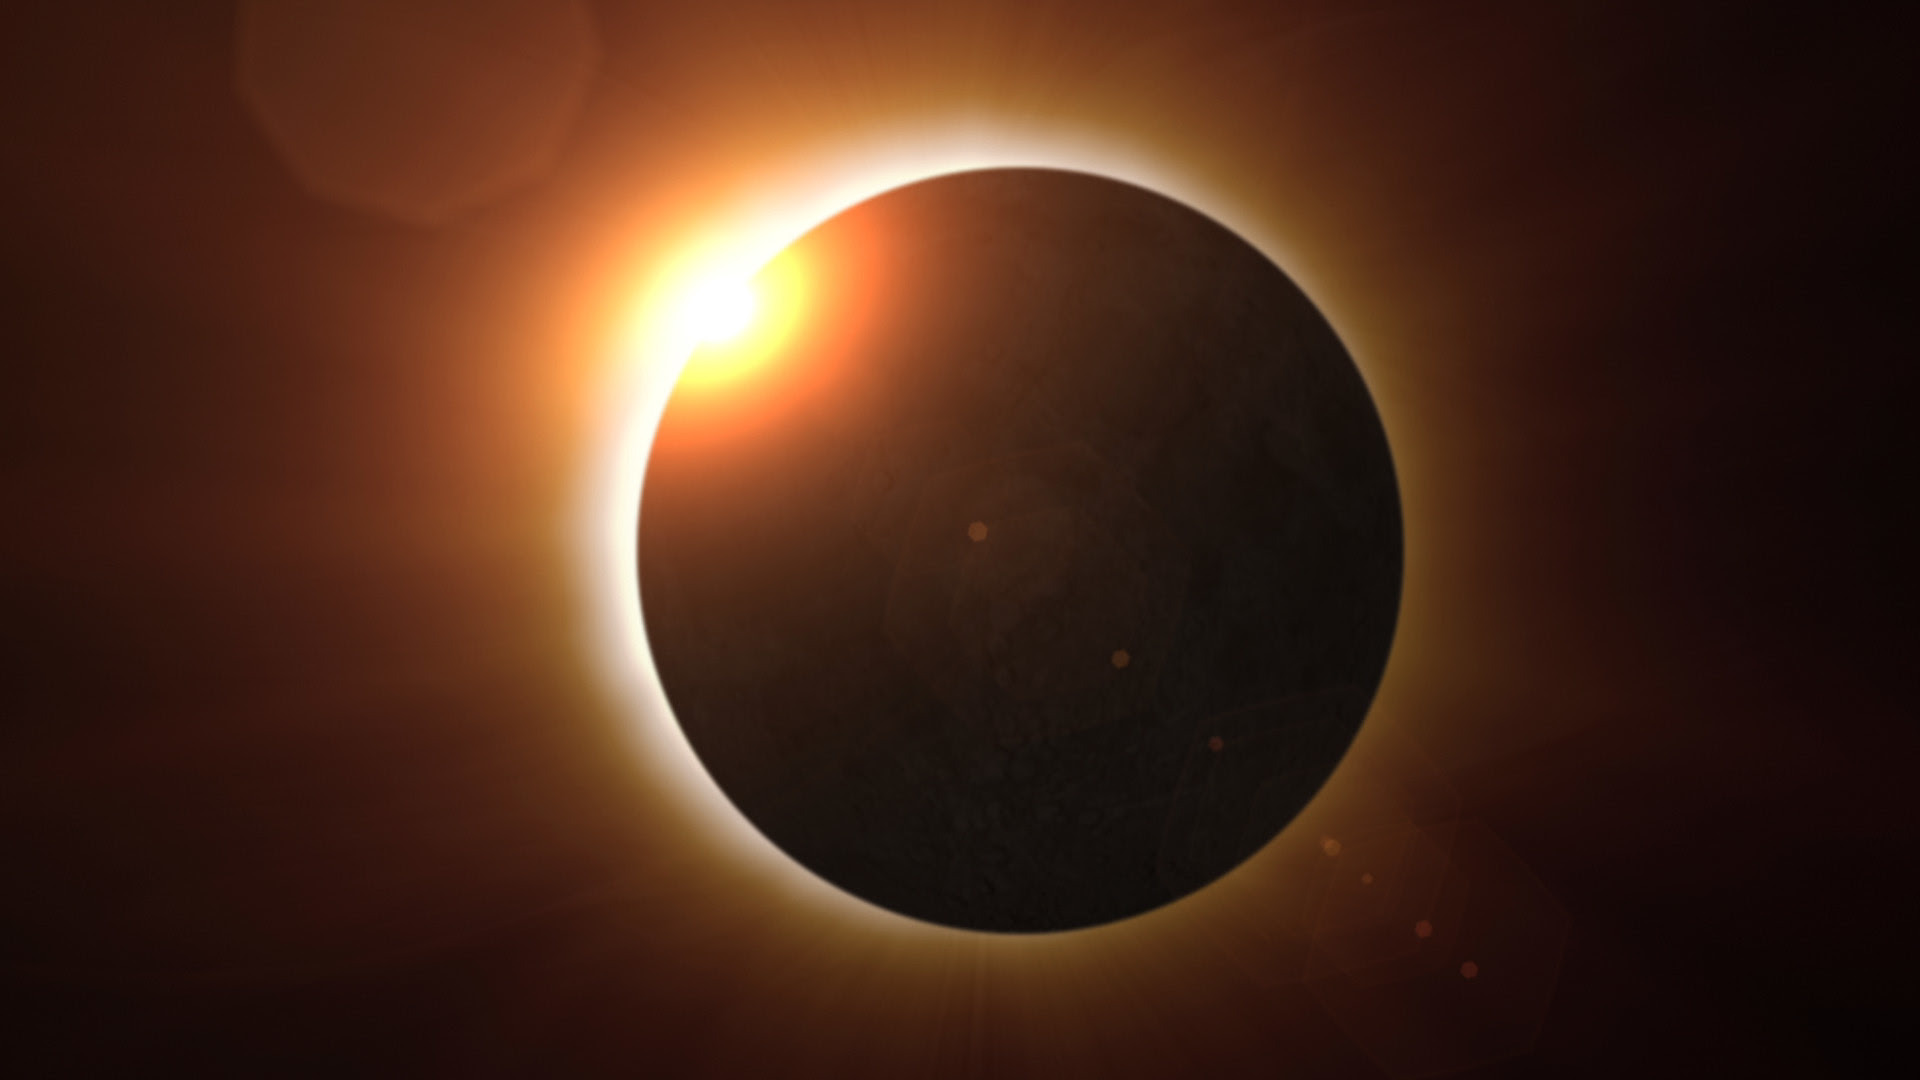 Solar Eclipse Wallpapers 57 Images